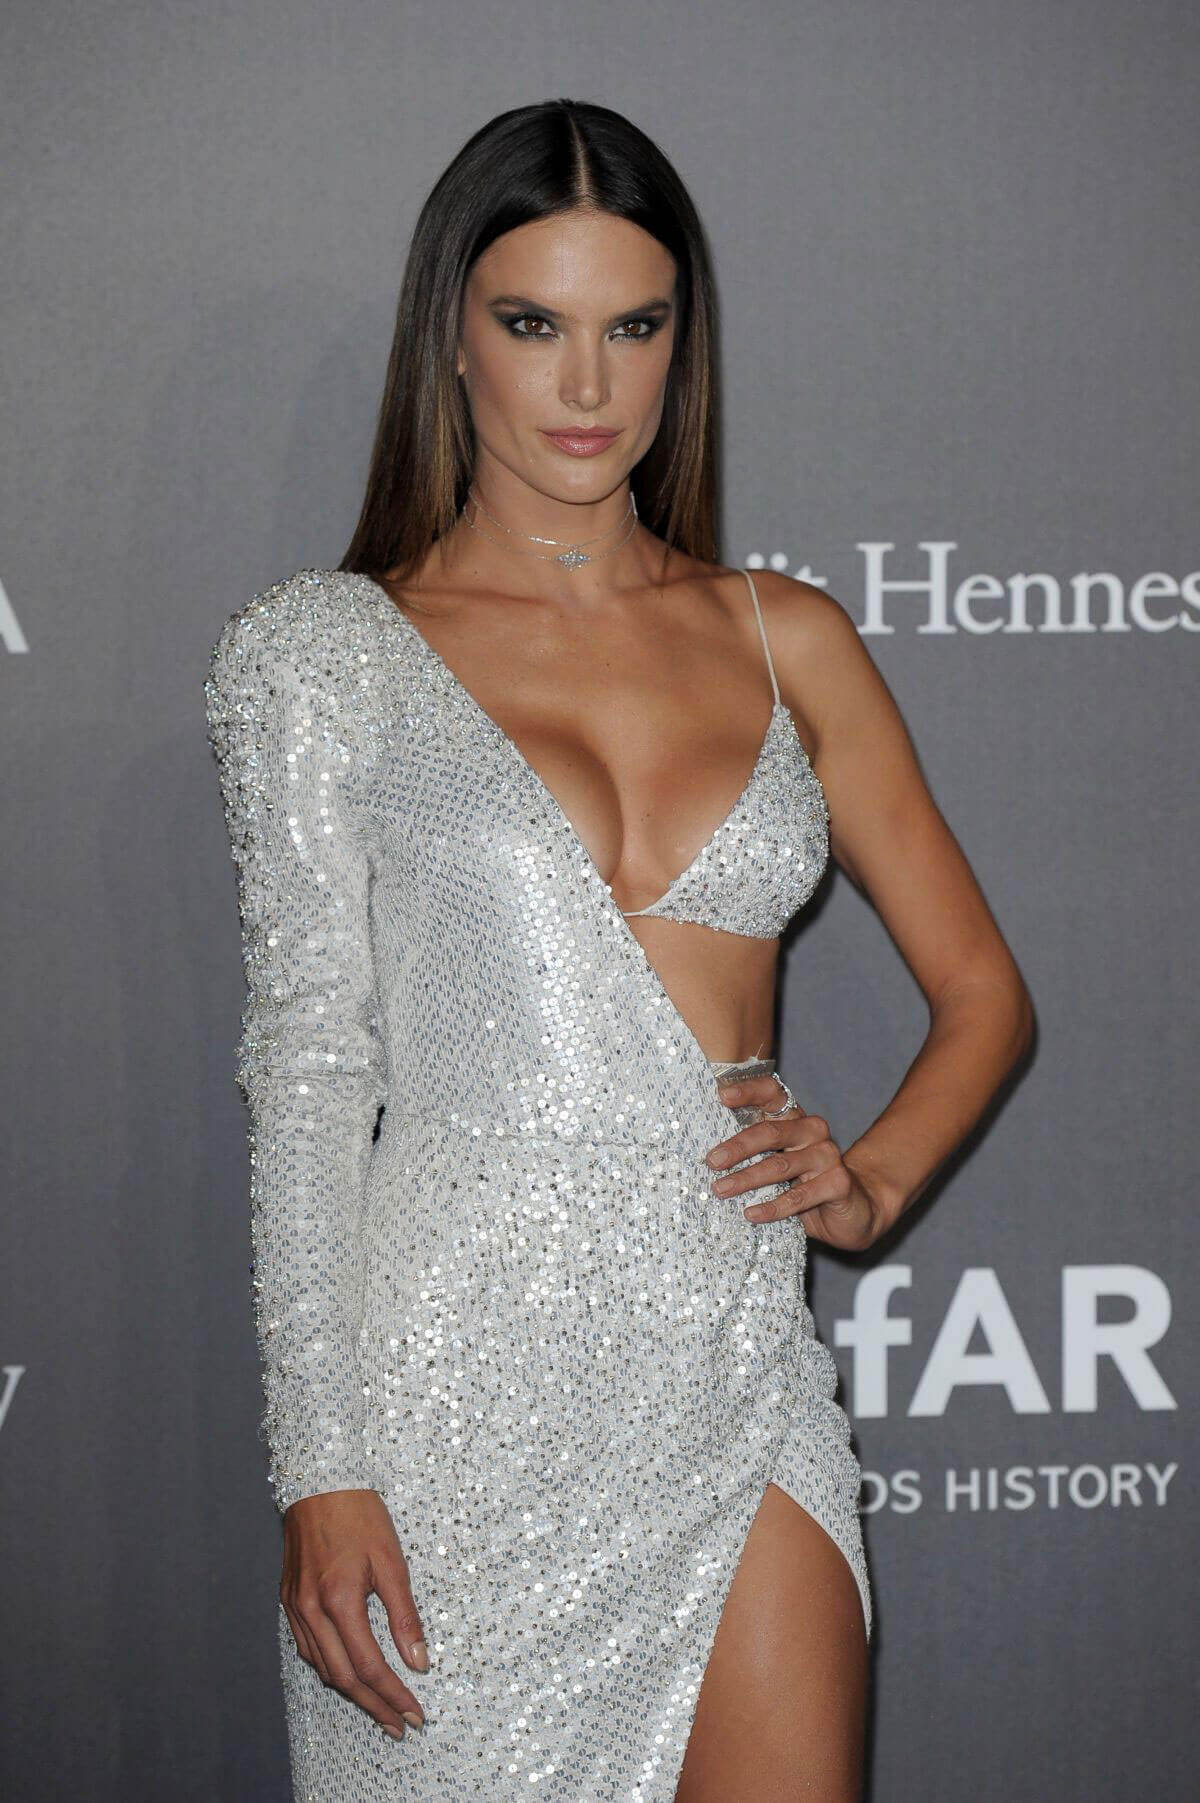 Alessandra Ambrosio shows off major cleavage at Amfar Gala in Milan